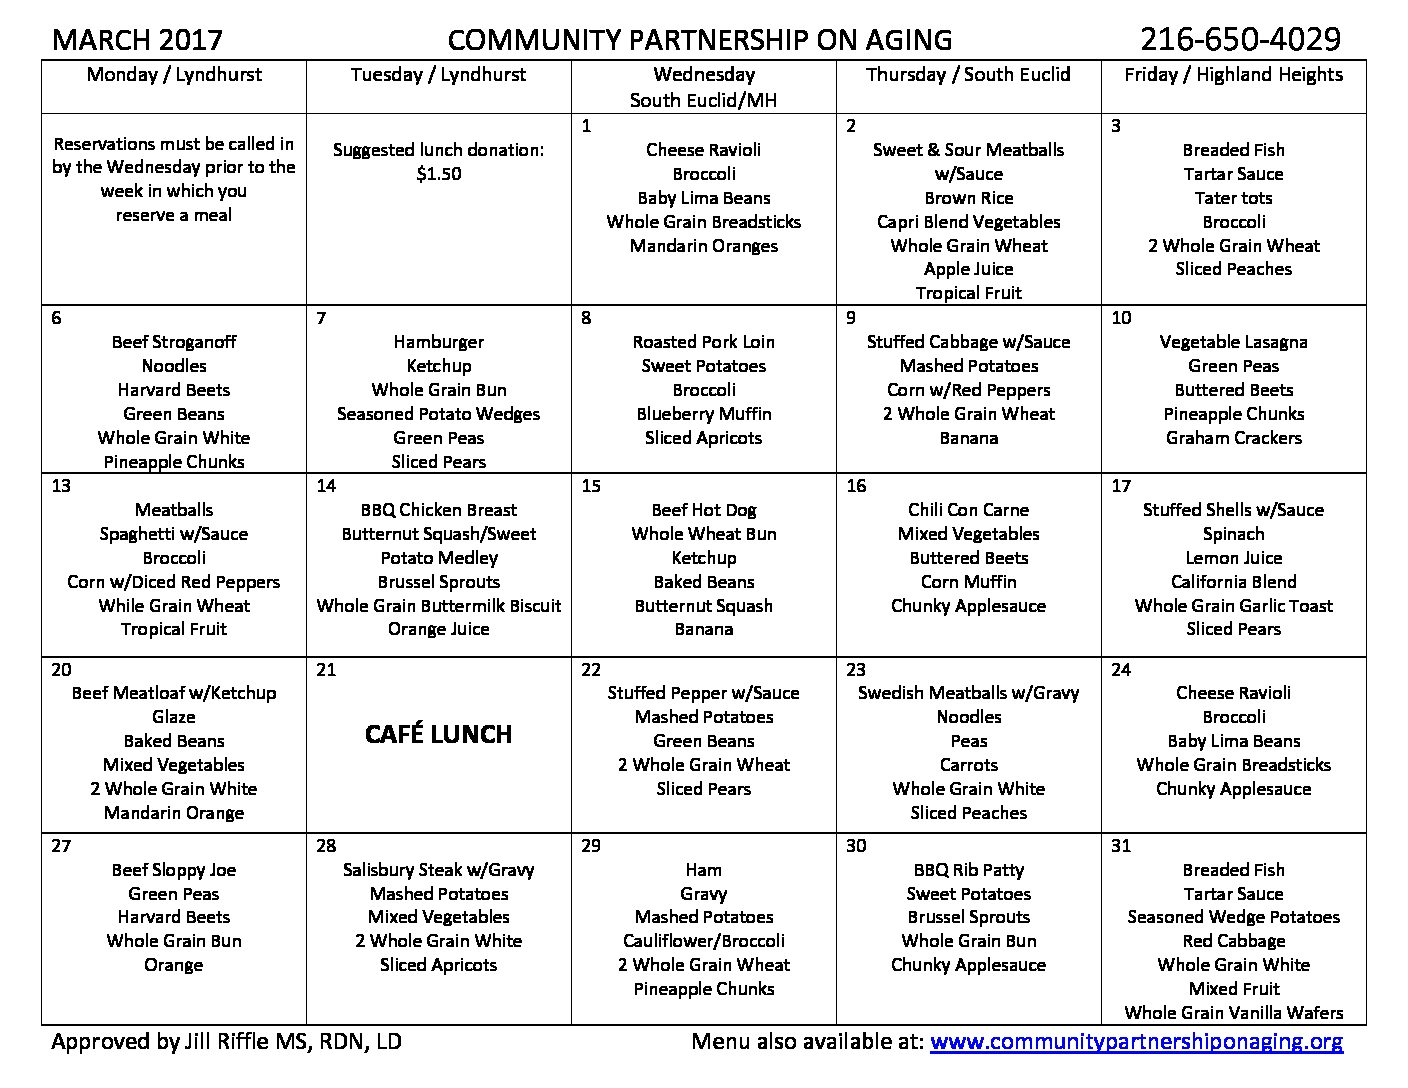 March 2017 CPA Lunch Menu